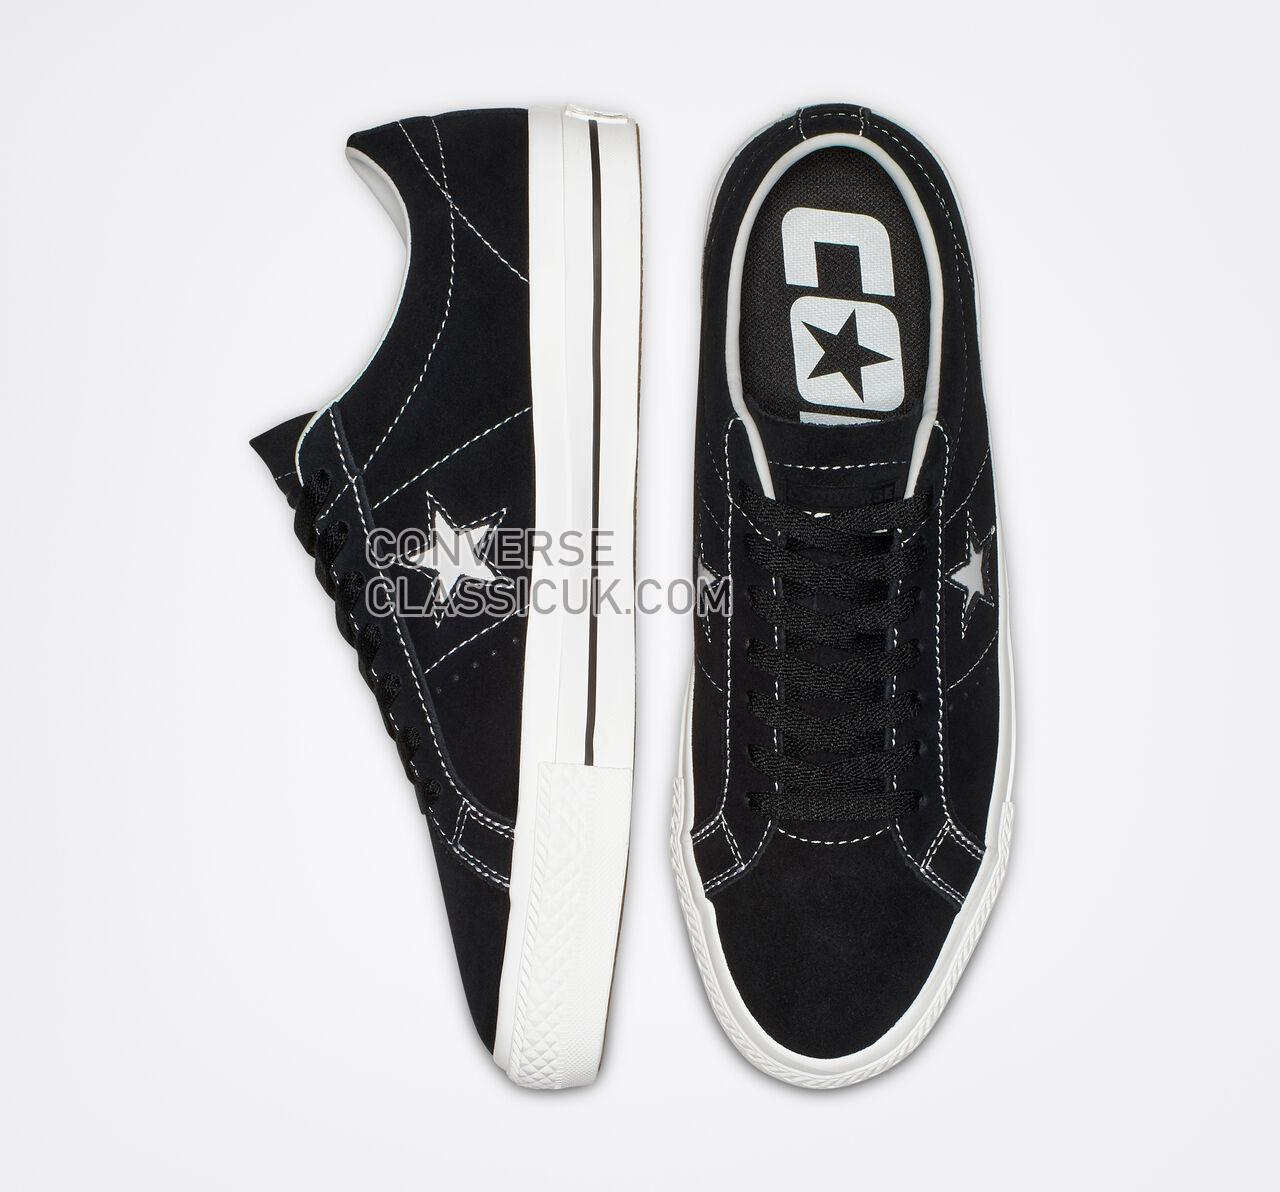 Converse One Star Pro Classic Suede Low Top Mens Womens Unisex 159579C Black/White/White Shoes